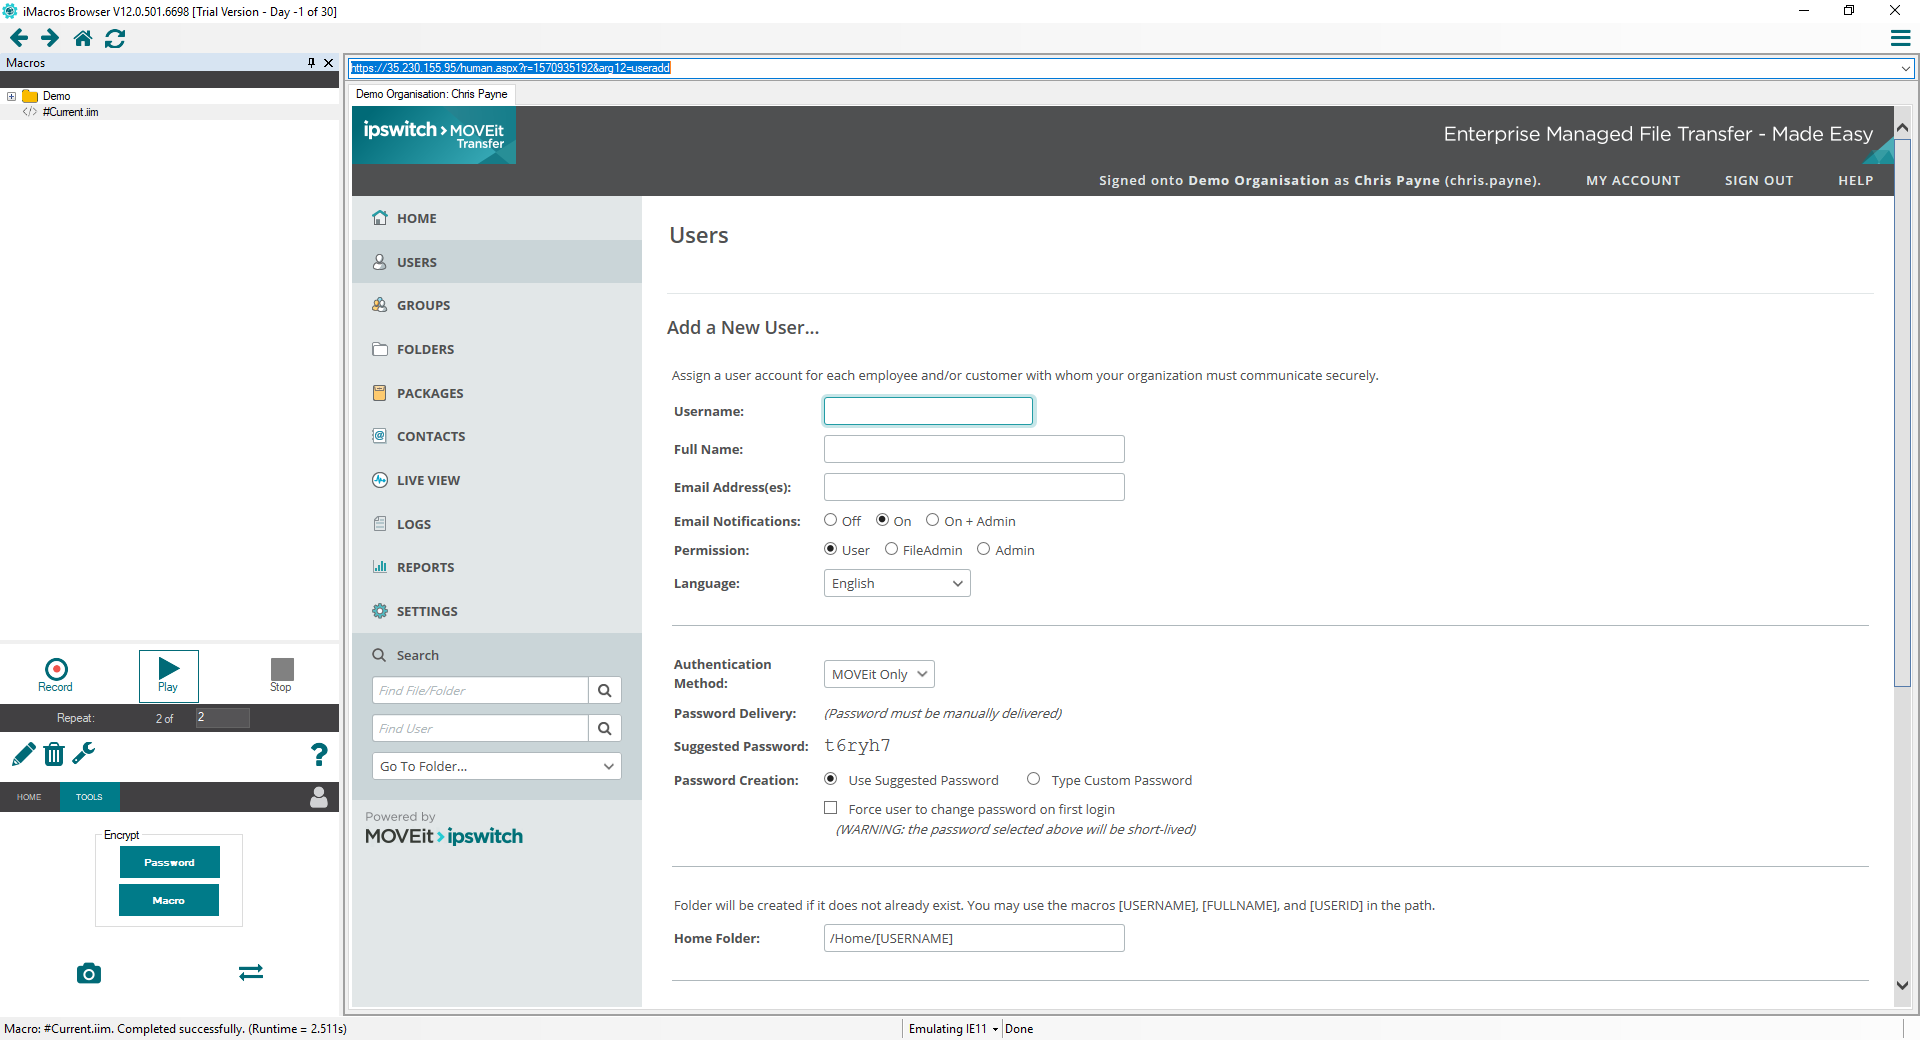 iMacros Automating the Import of 800 Accounts